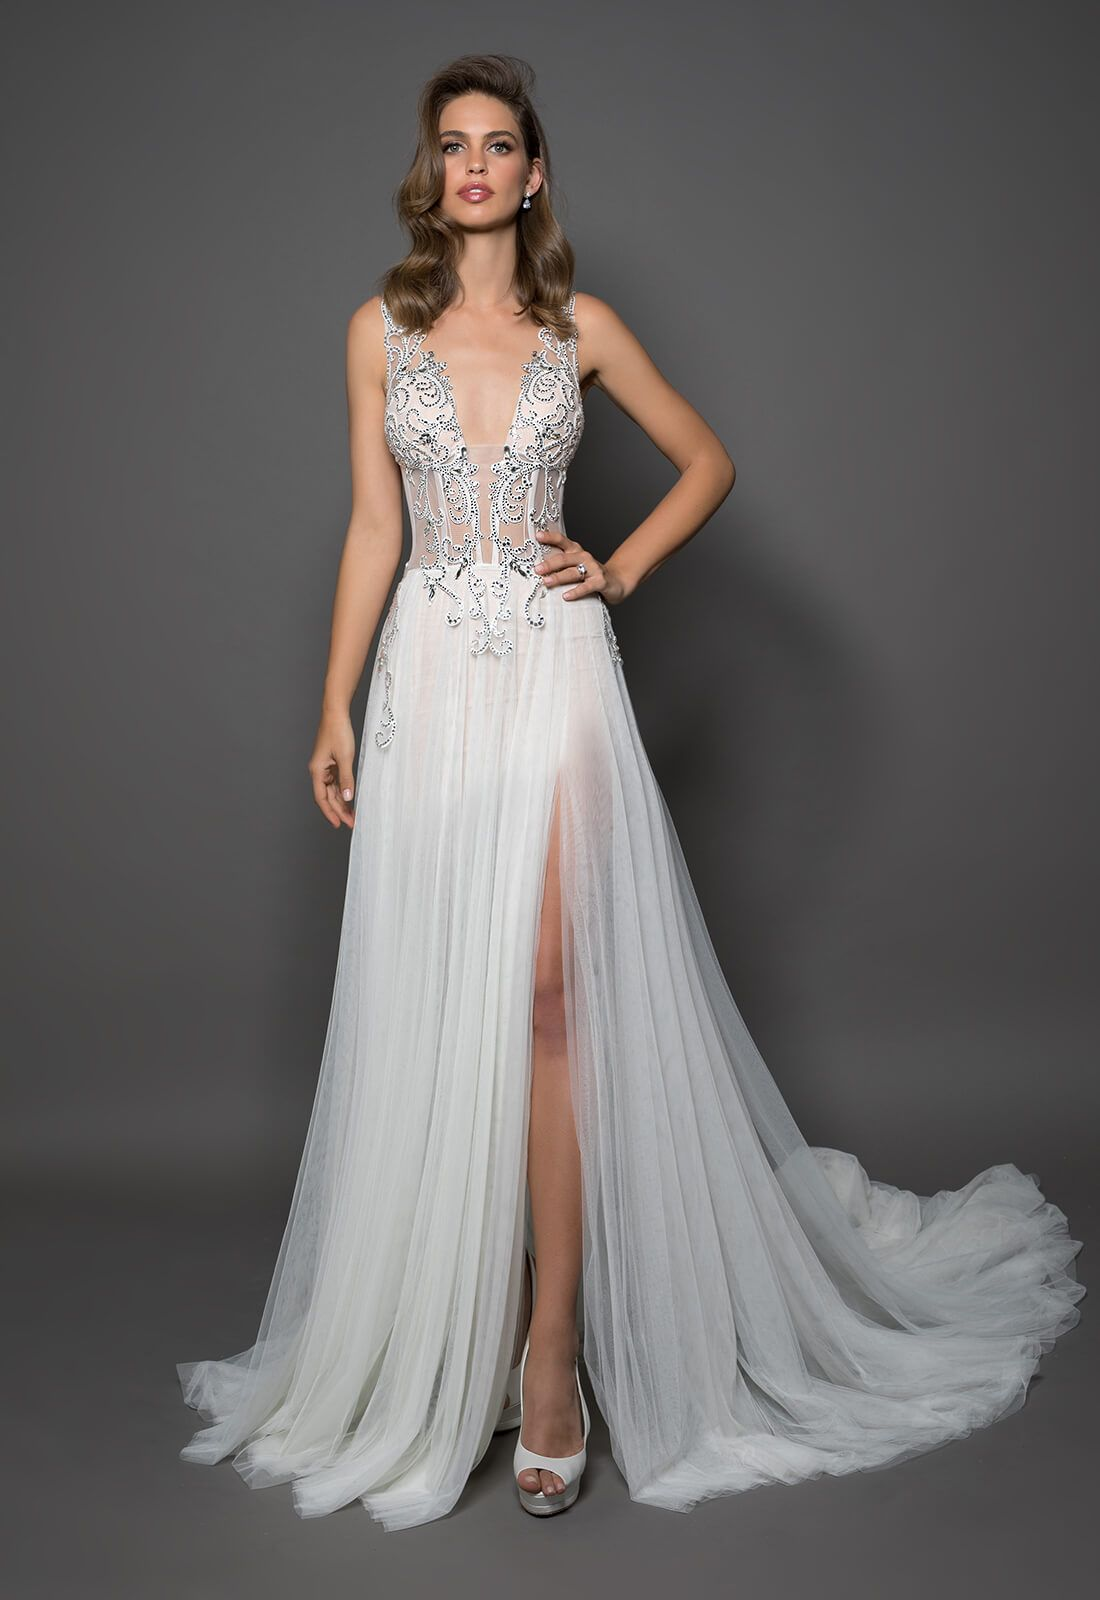 f224330306 Sleeveless v-neck sheath wedding dress with crystal corset bodice and tulle  skirt. | Love by Pnina Tornai | Style: 14605